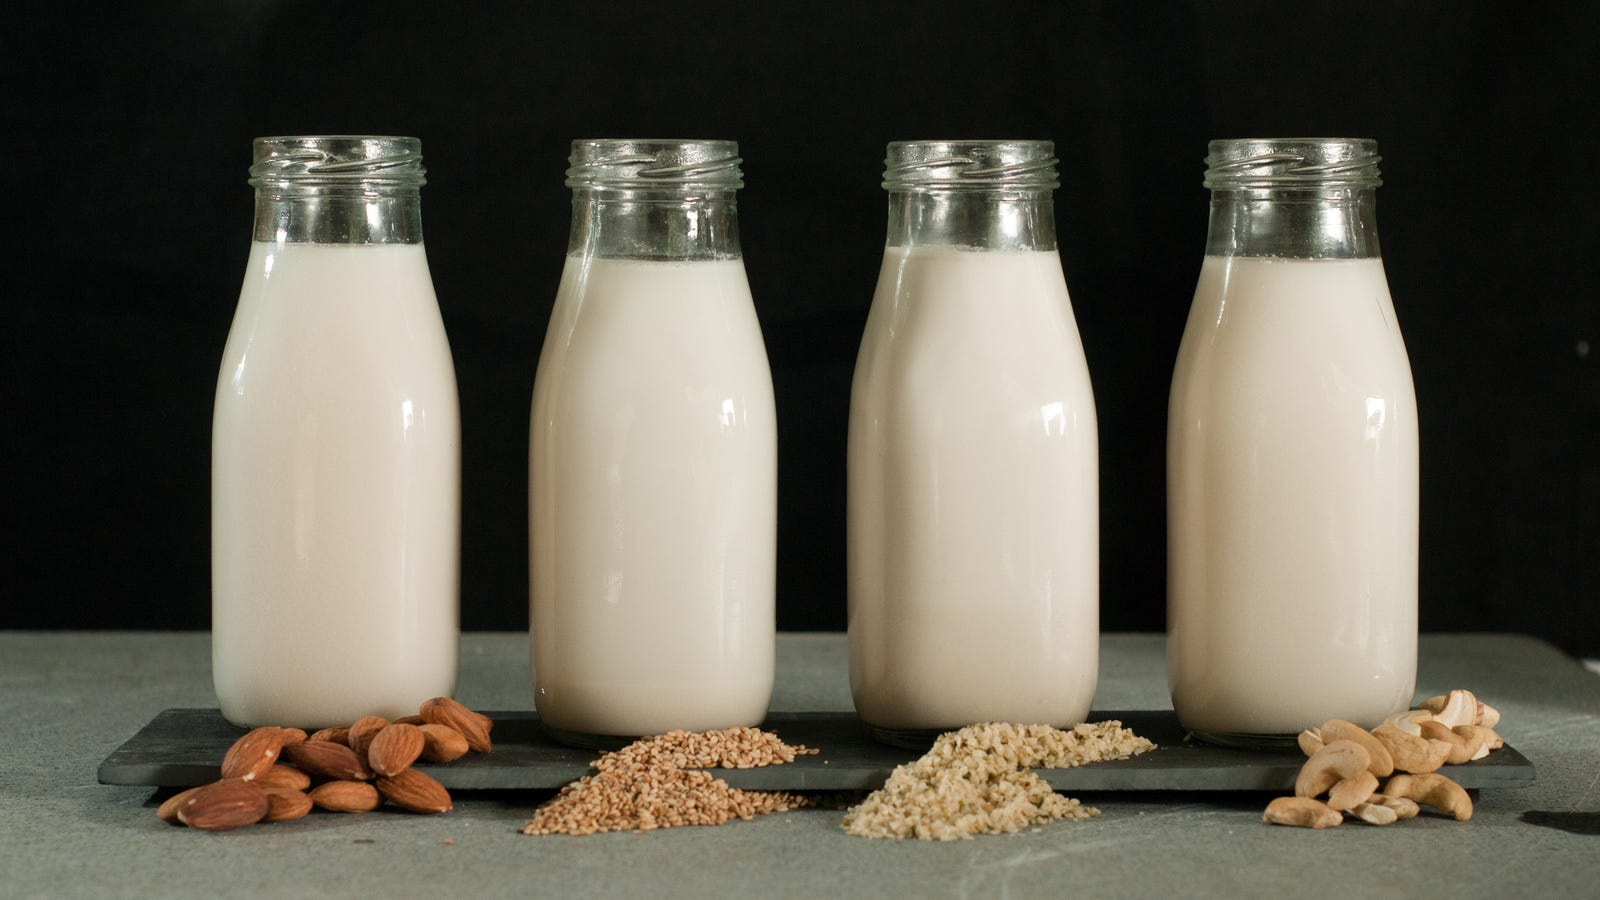 """Some dairy farmers would rather you call it """"nut juice"""" than almond milk - The Takeout"""